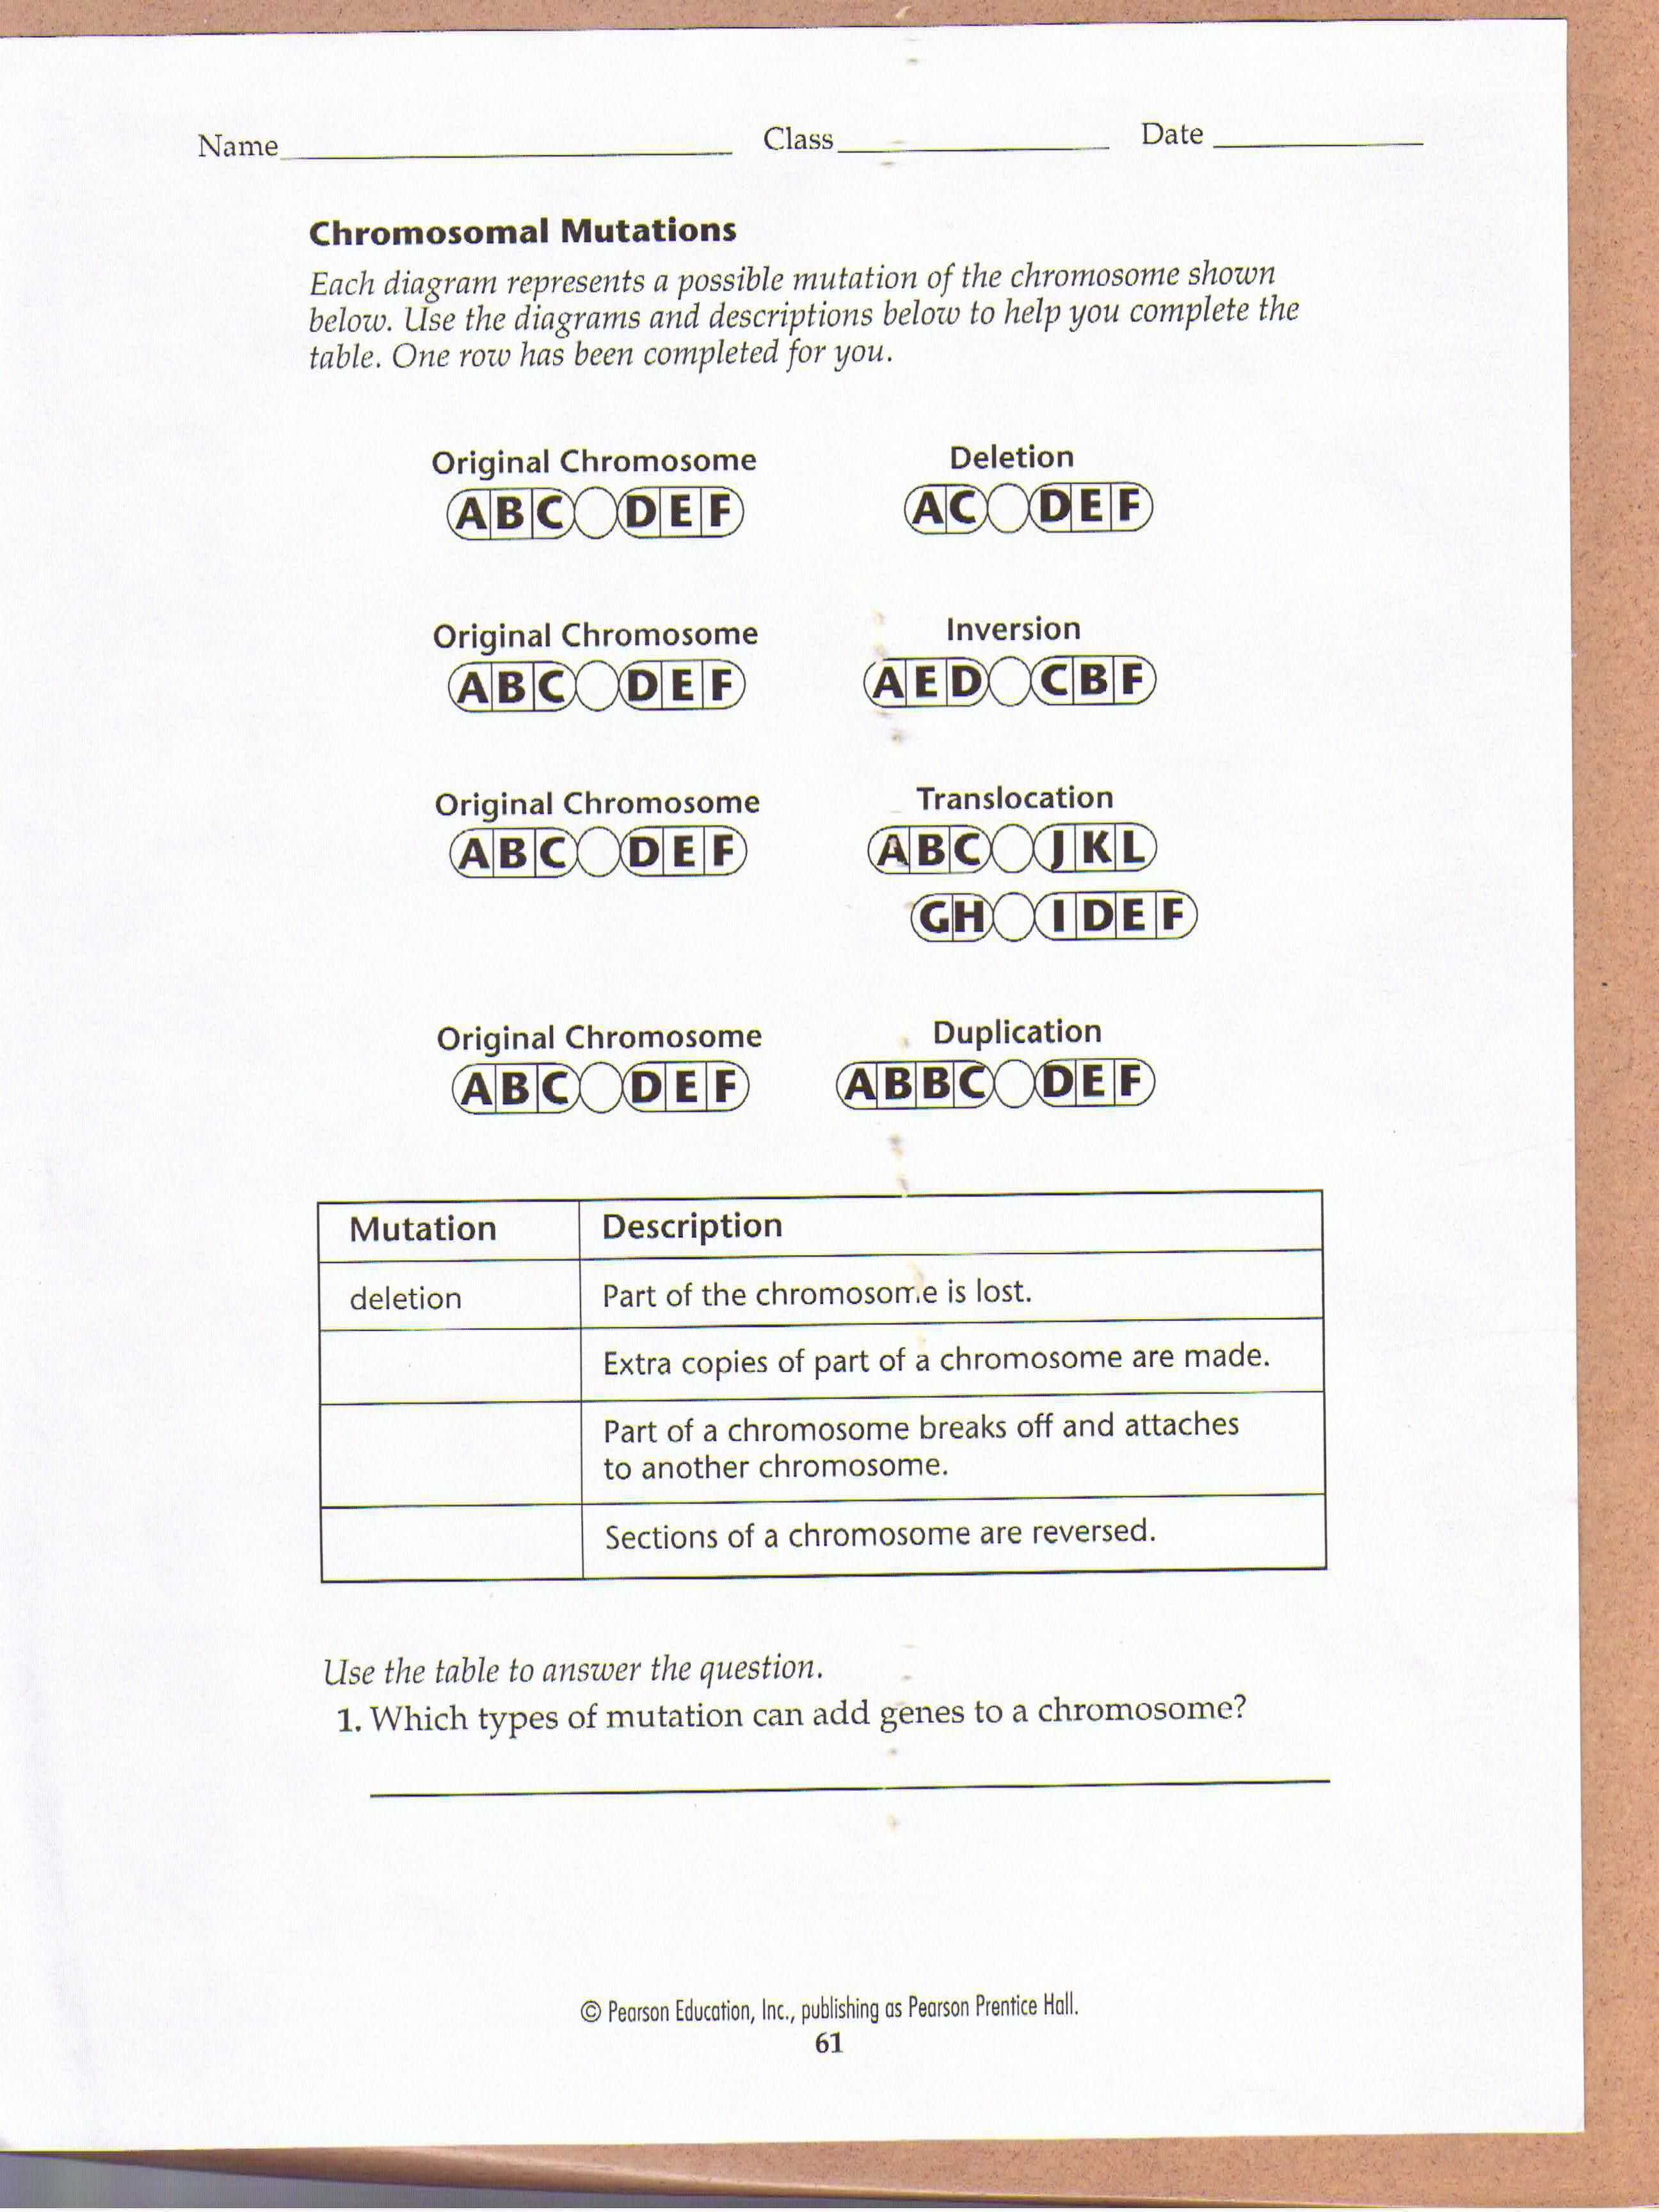 worksheet Chromosomal Mutations Worksheet chromosomal mutations worksheet education pinterest worksheets worksheet